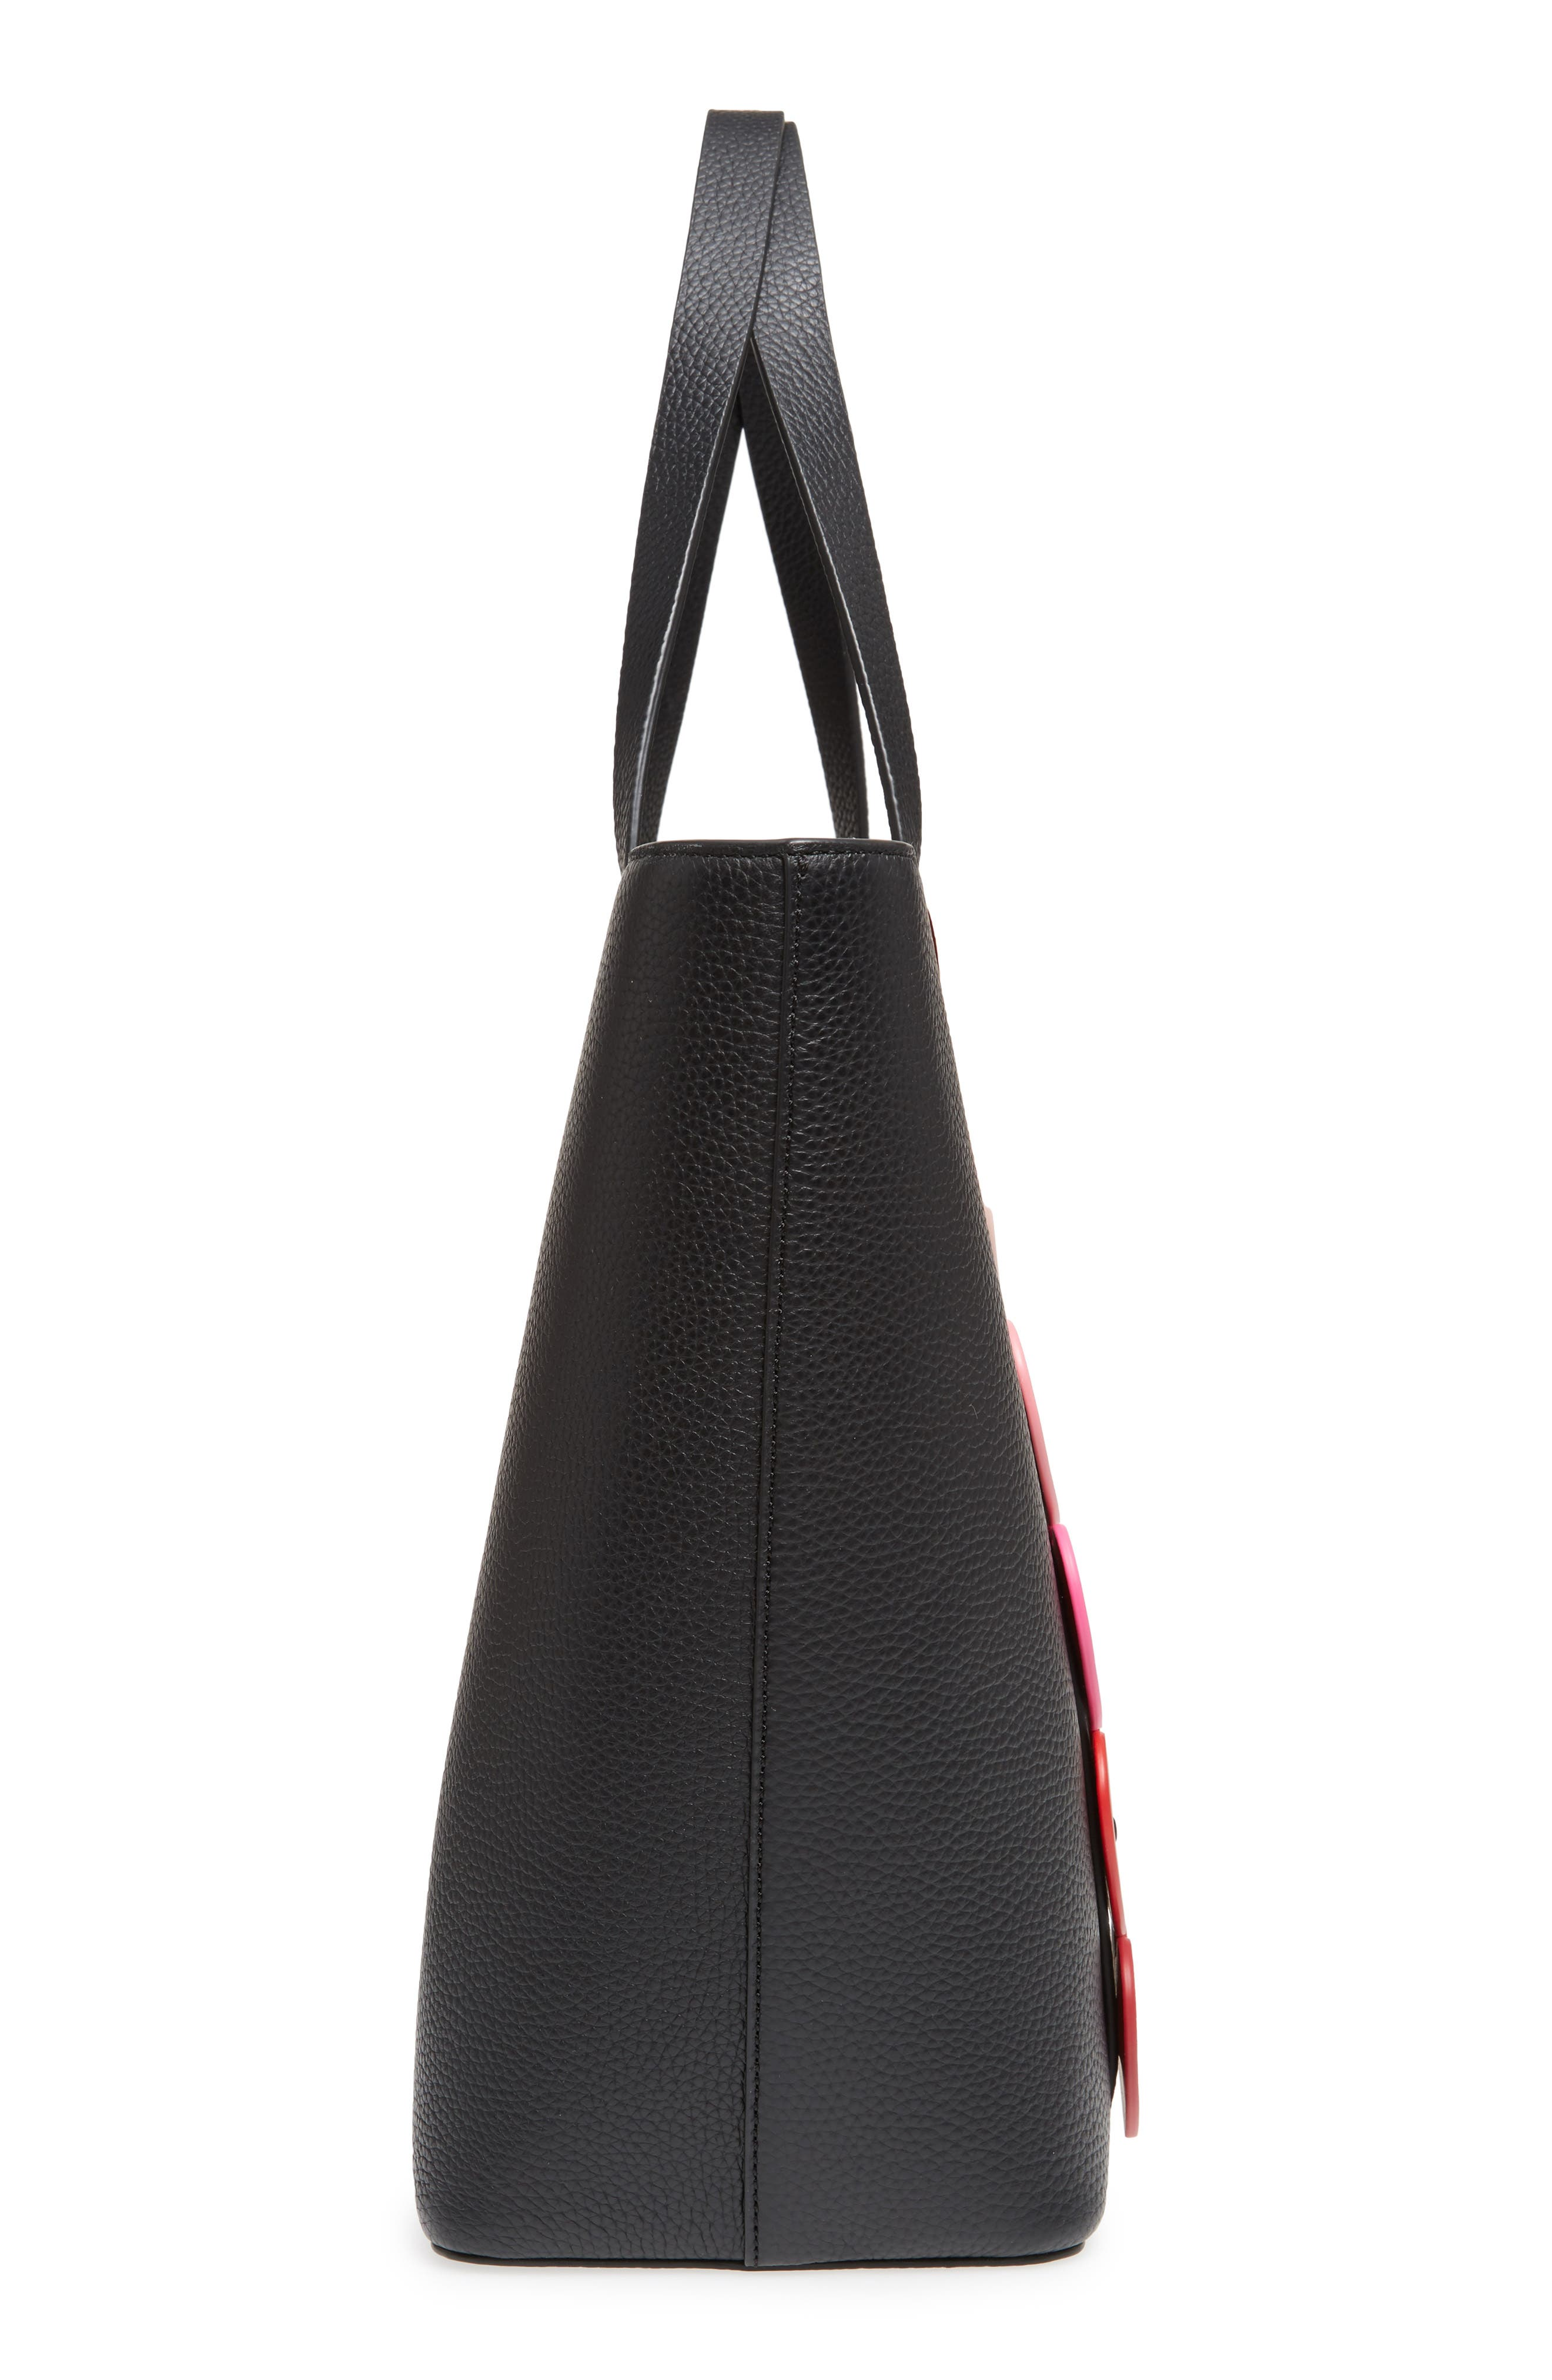 yours truly - ombré heart leather tote,                             Alternate thumbnail 5, color,